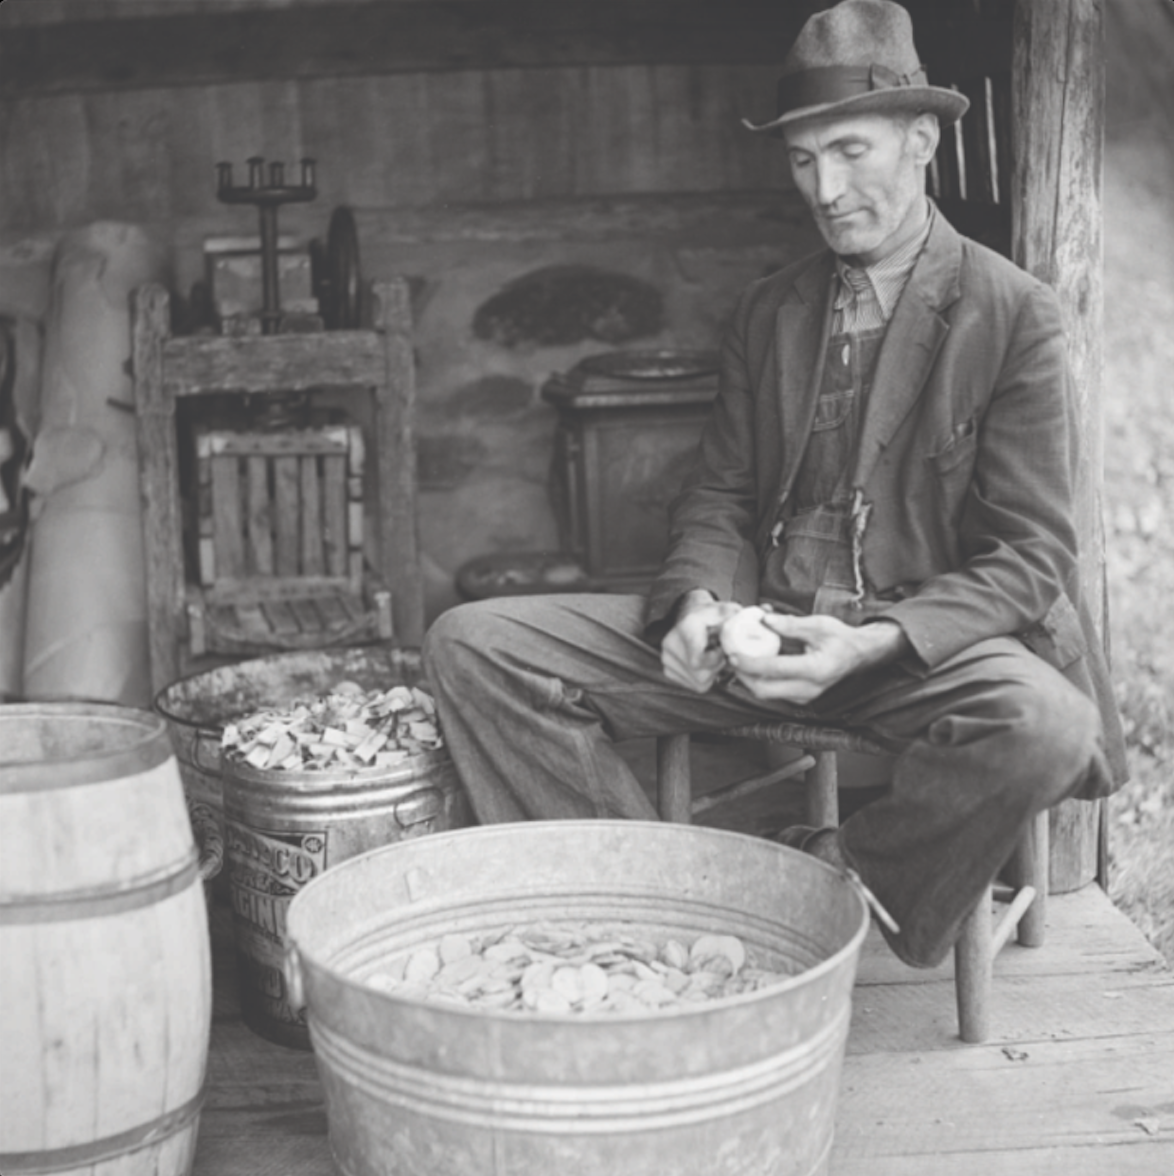 vintage photograph of a man in a coat and hat peeling apples